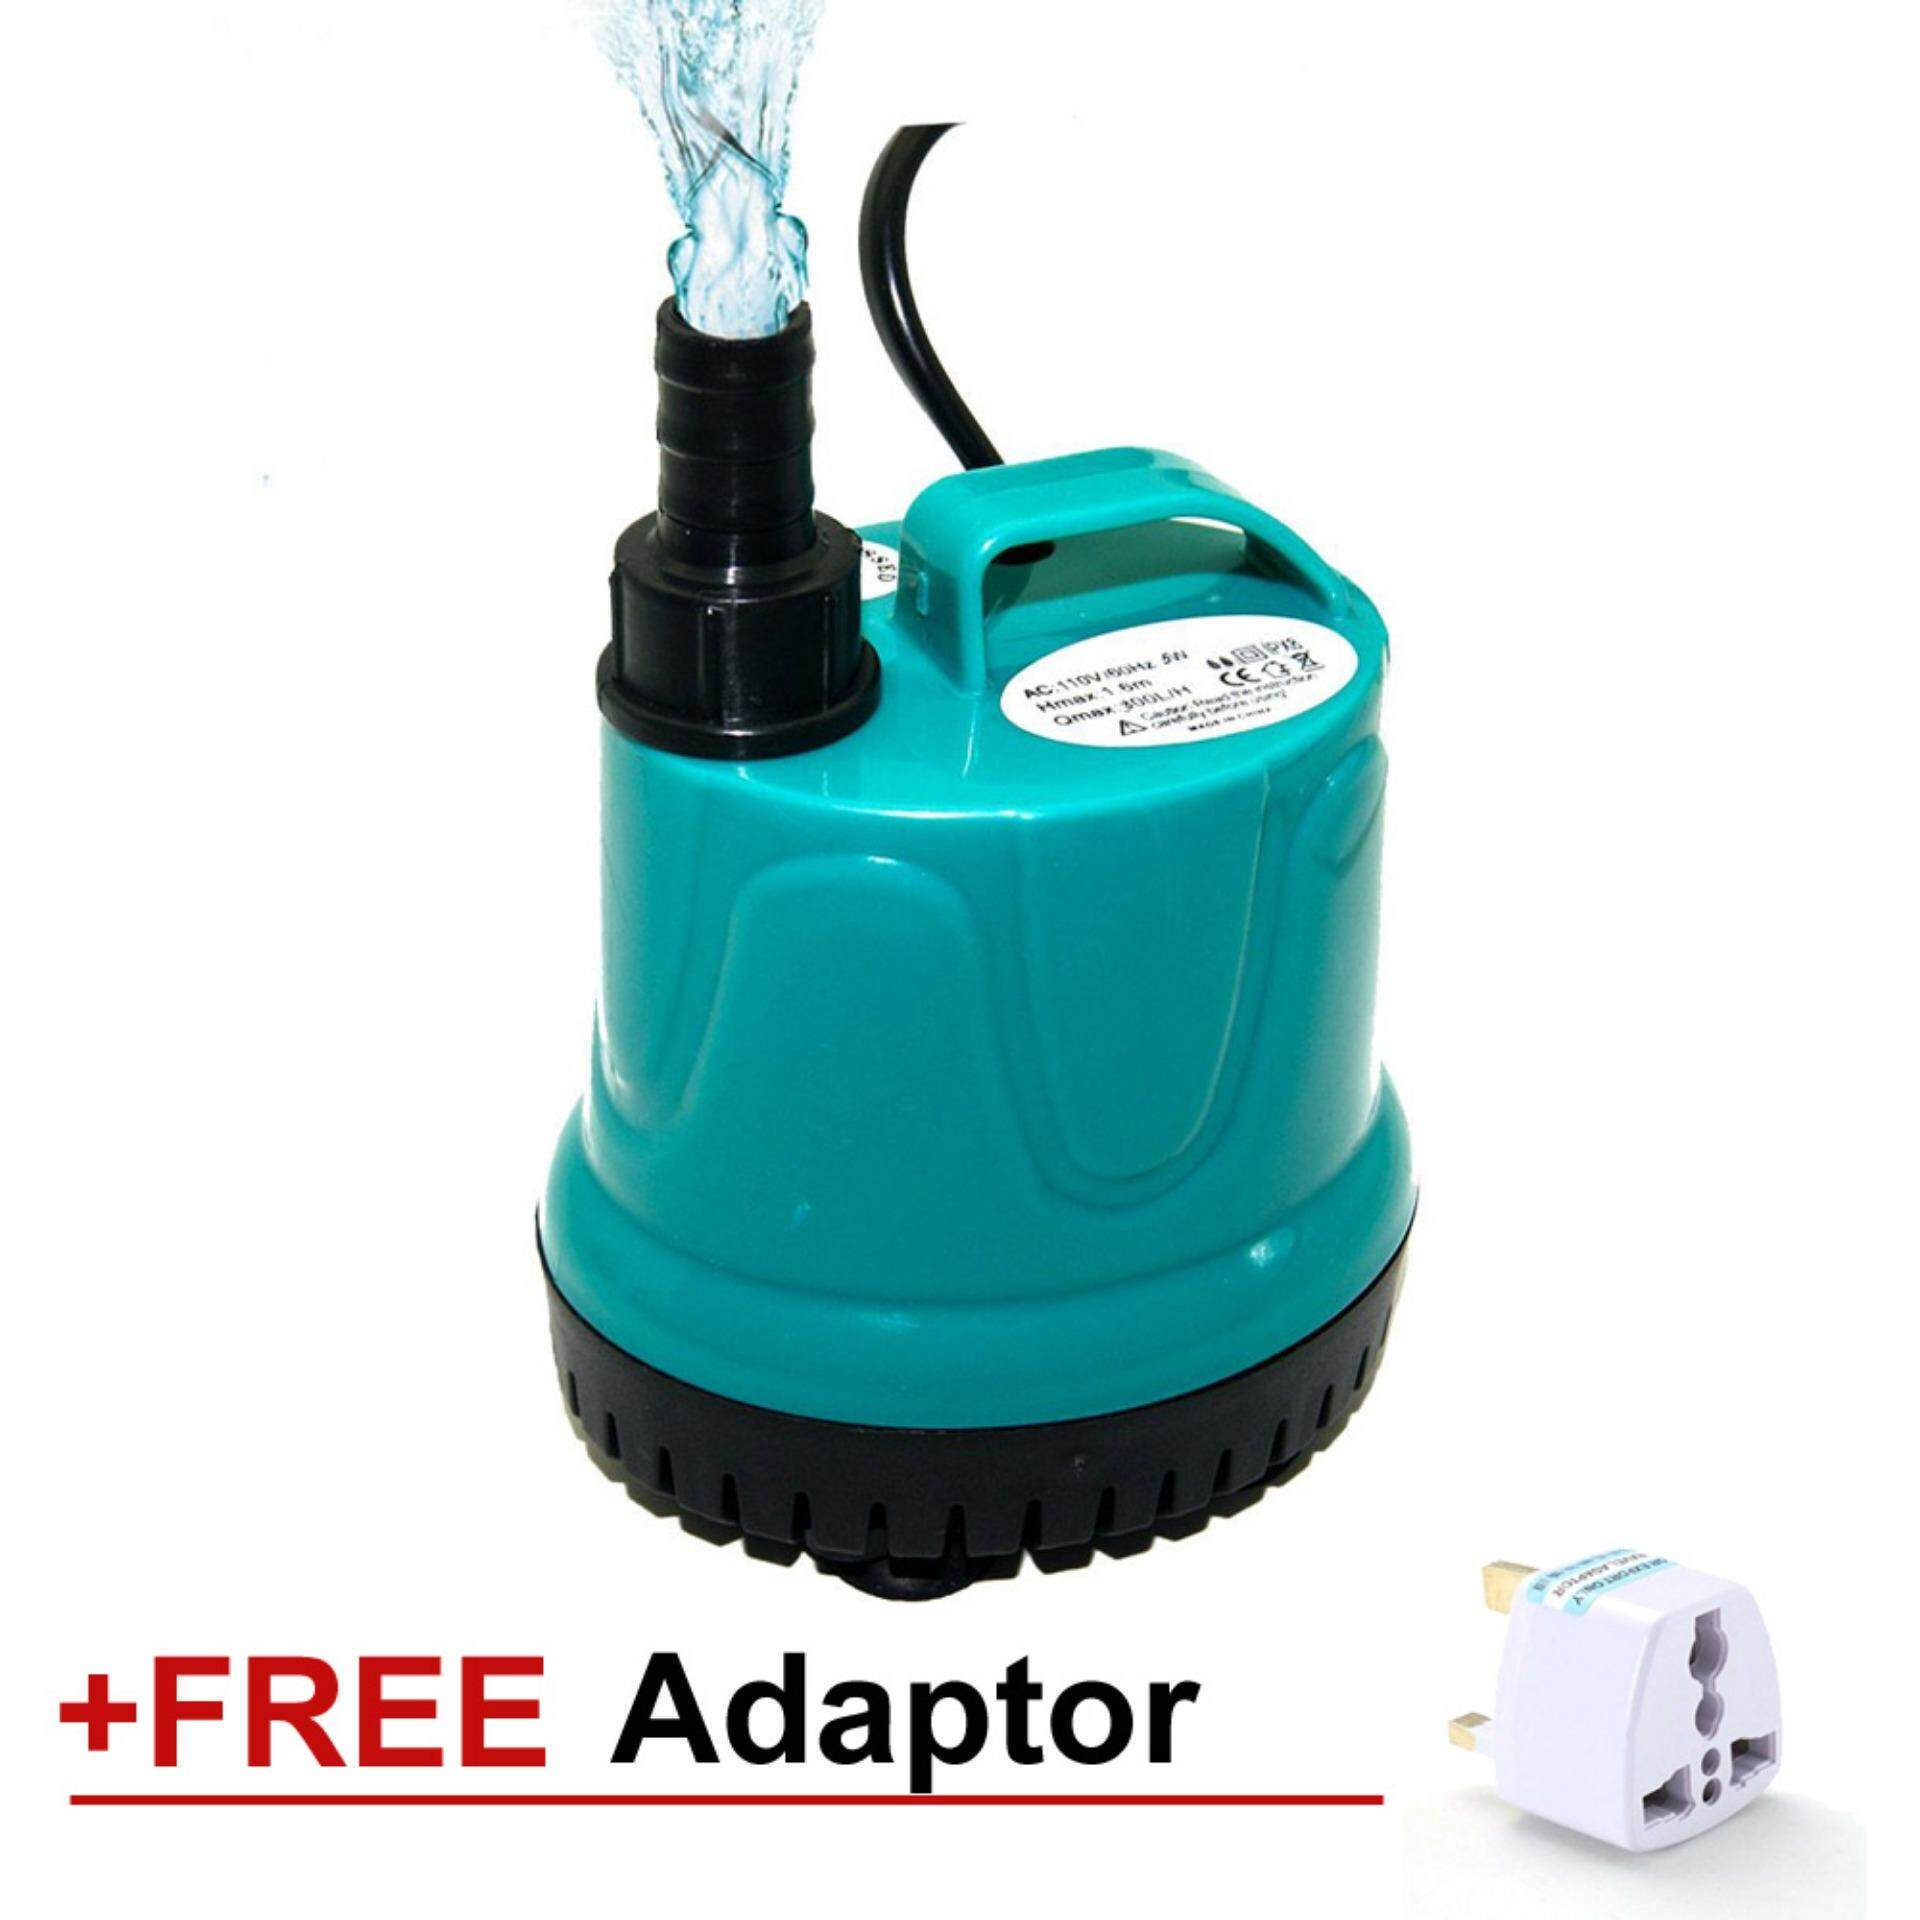 125W 5000L/H Submersible Water Pump Aquarium Fish Tank Garden